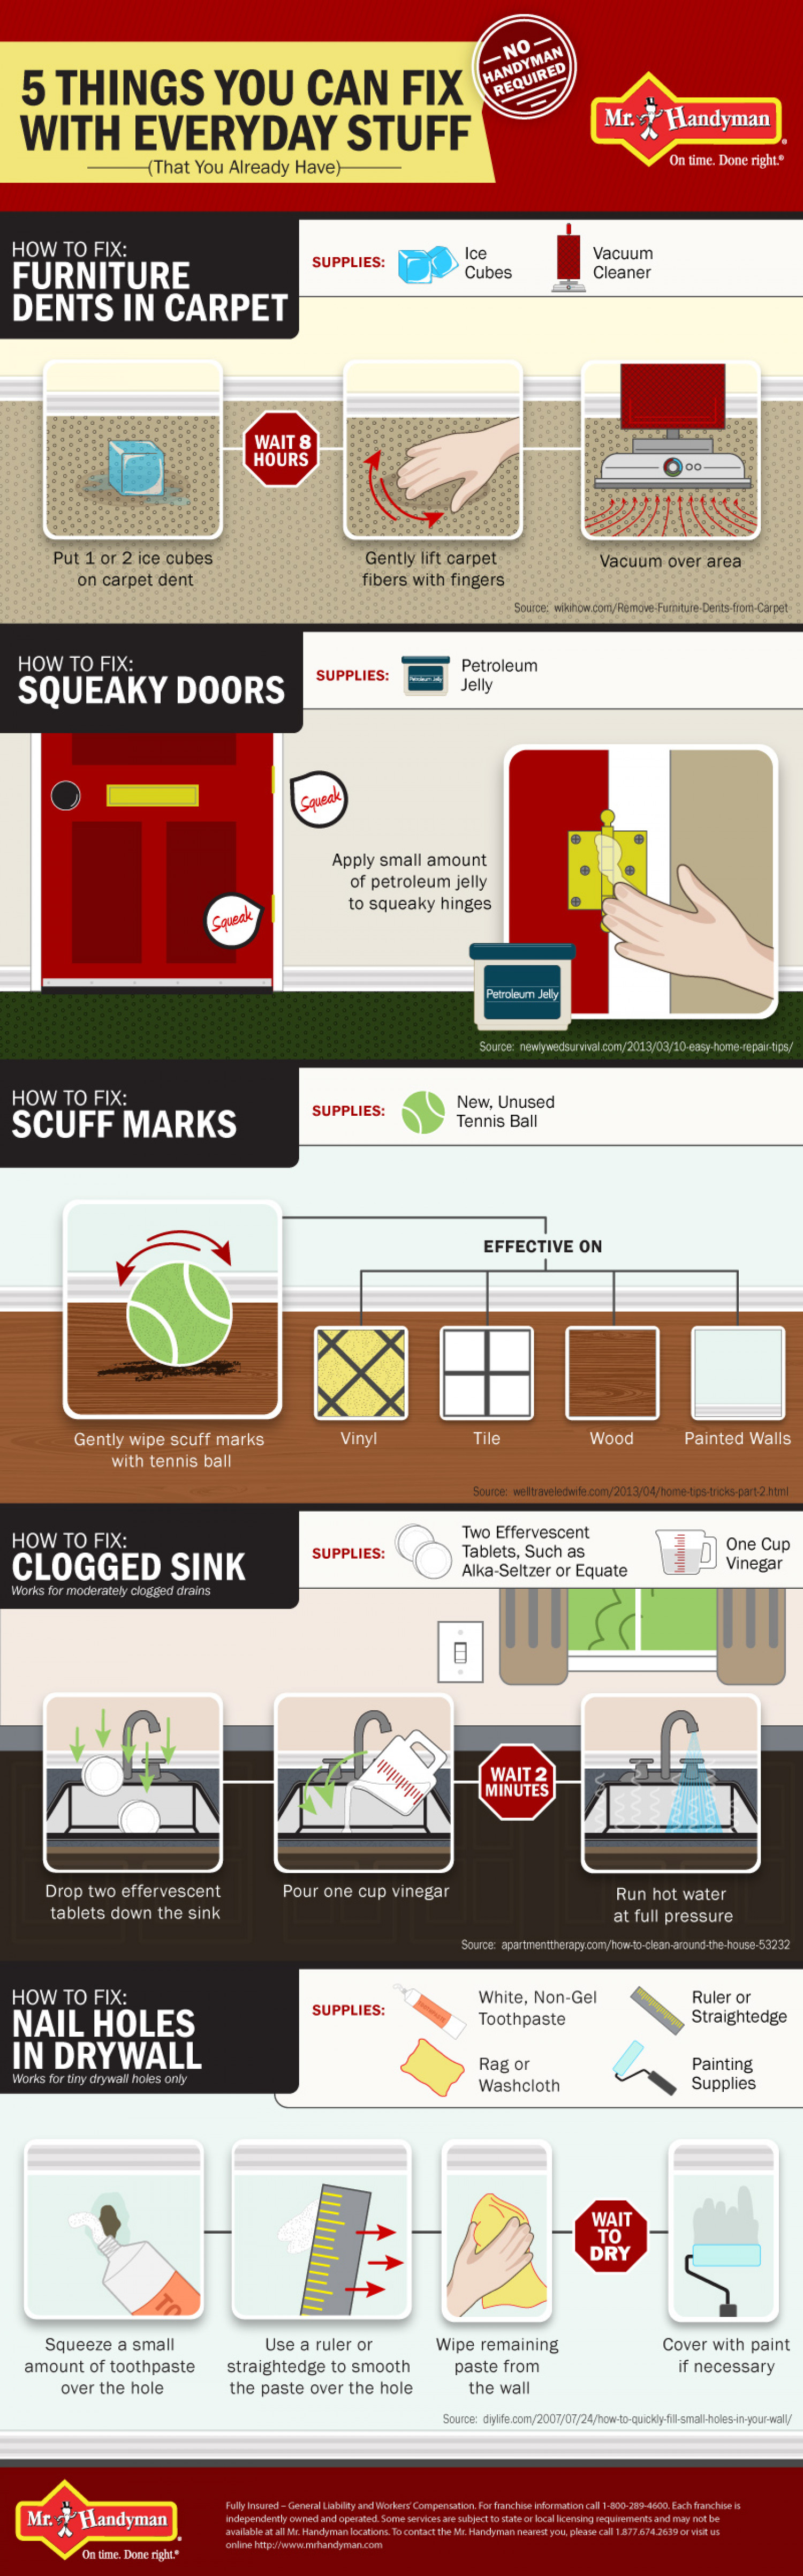 DIY Home Tips: 5 Things You Can Fix Without a Handyman - Mr. Handyman Infographic